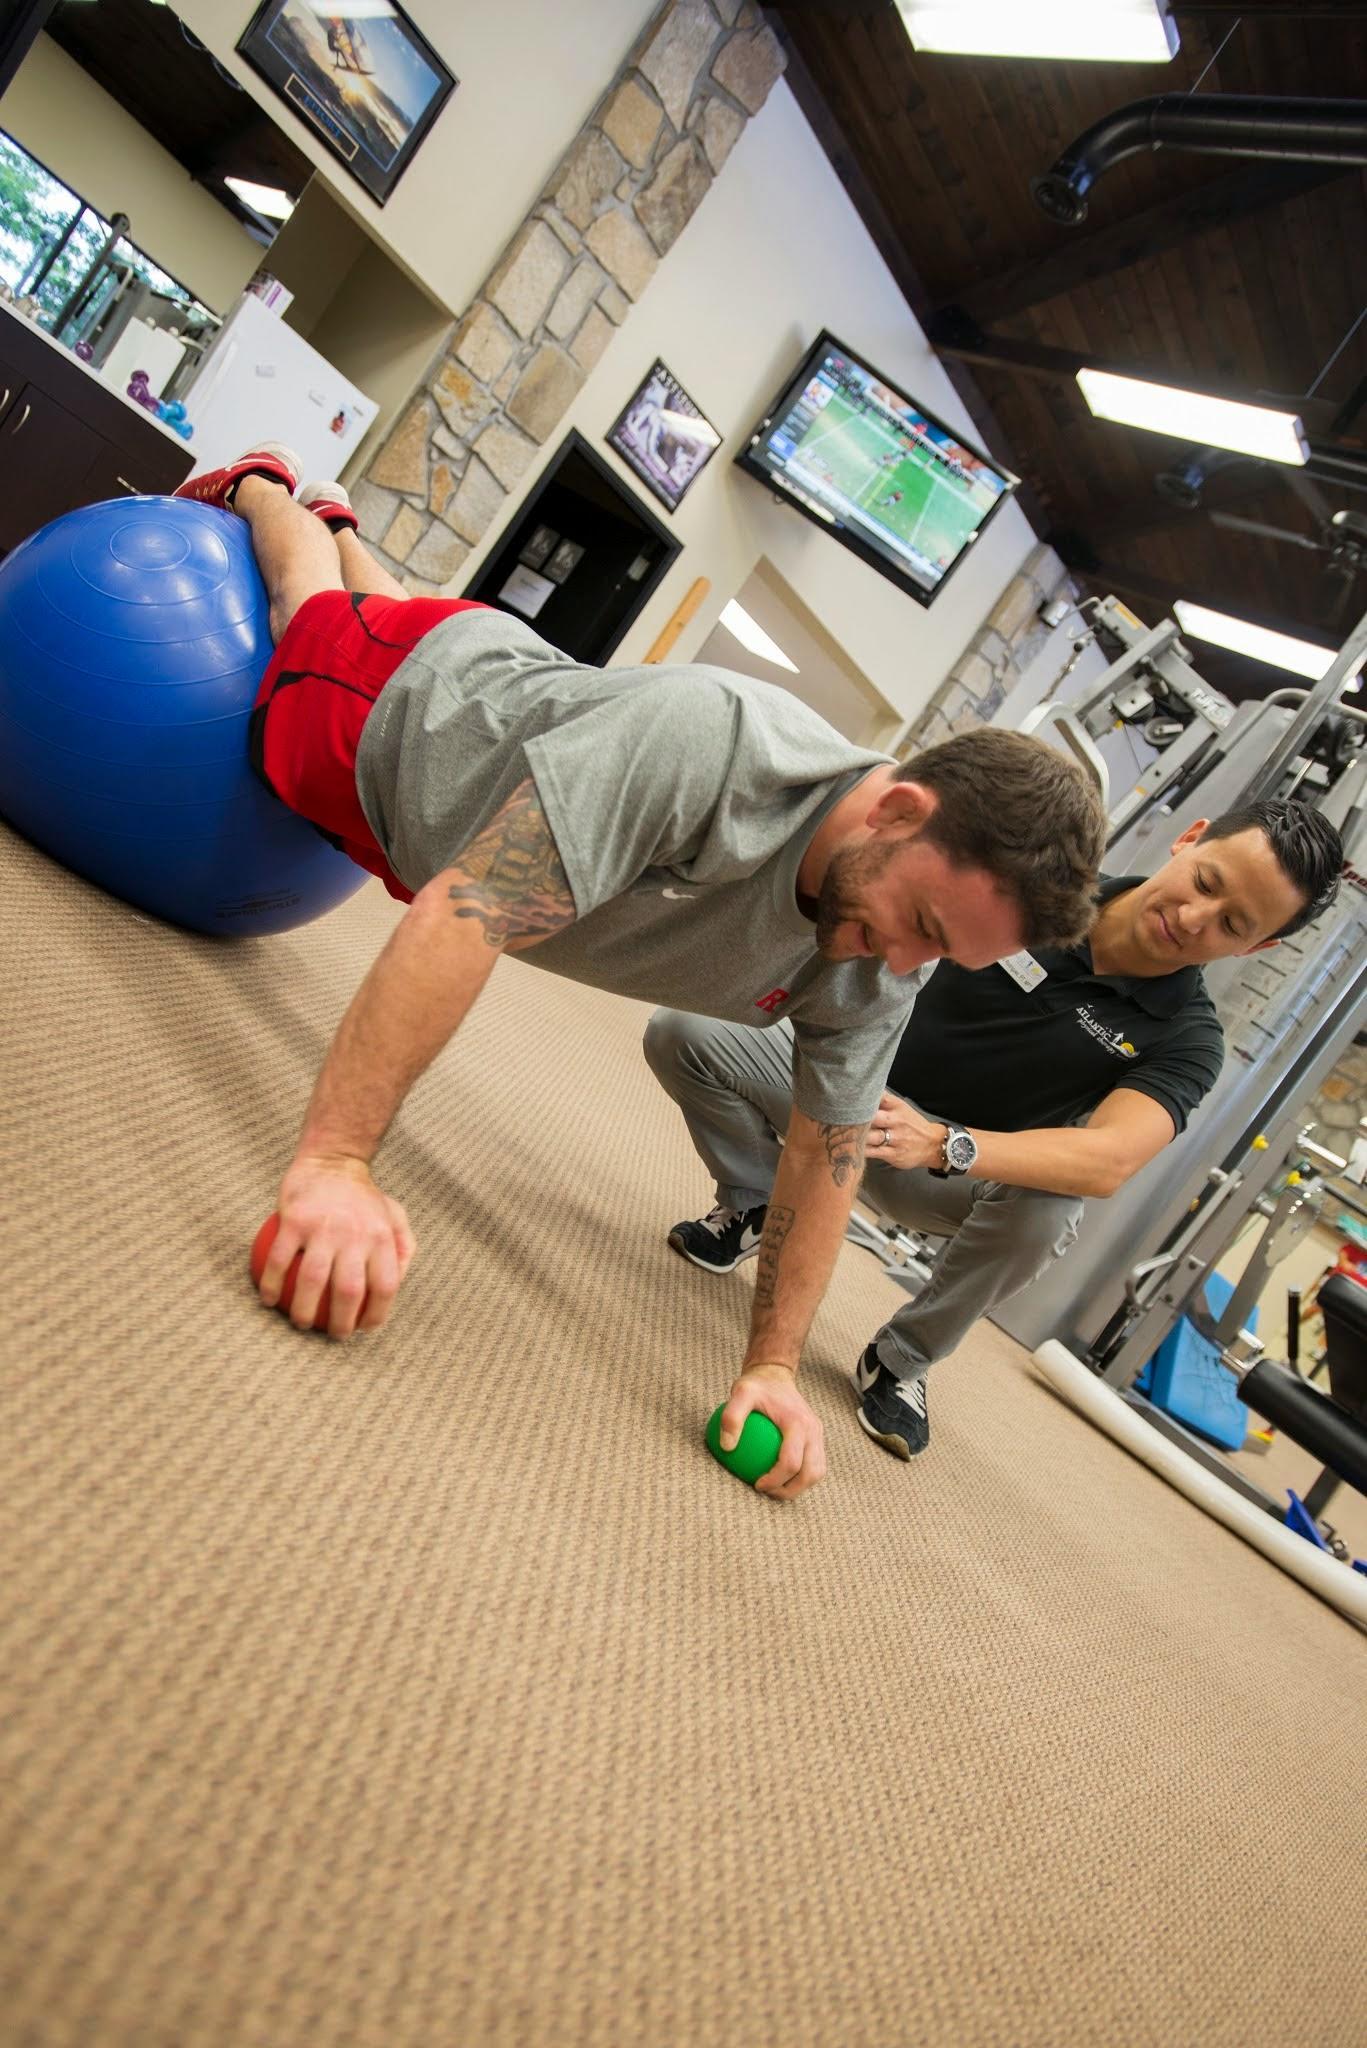 Atlantic Physical Therapy Center Toms River - Rt 9 image 0